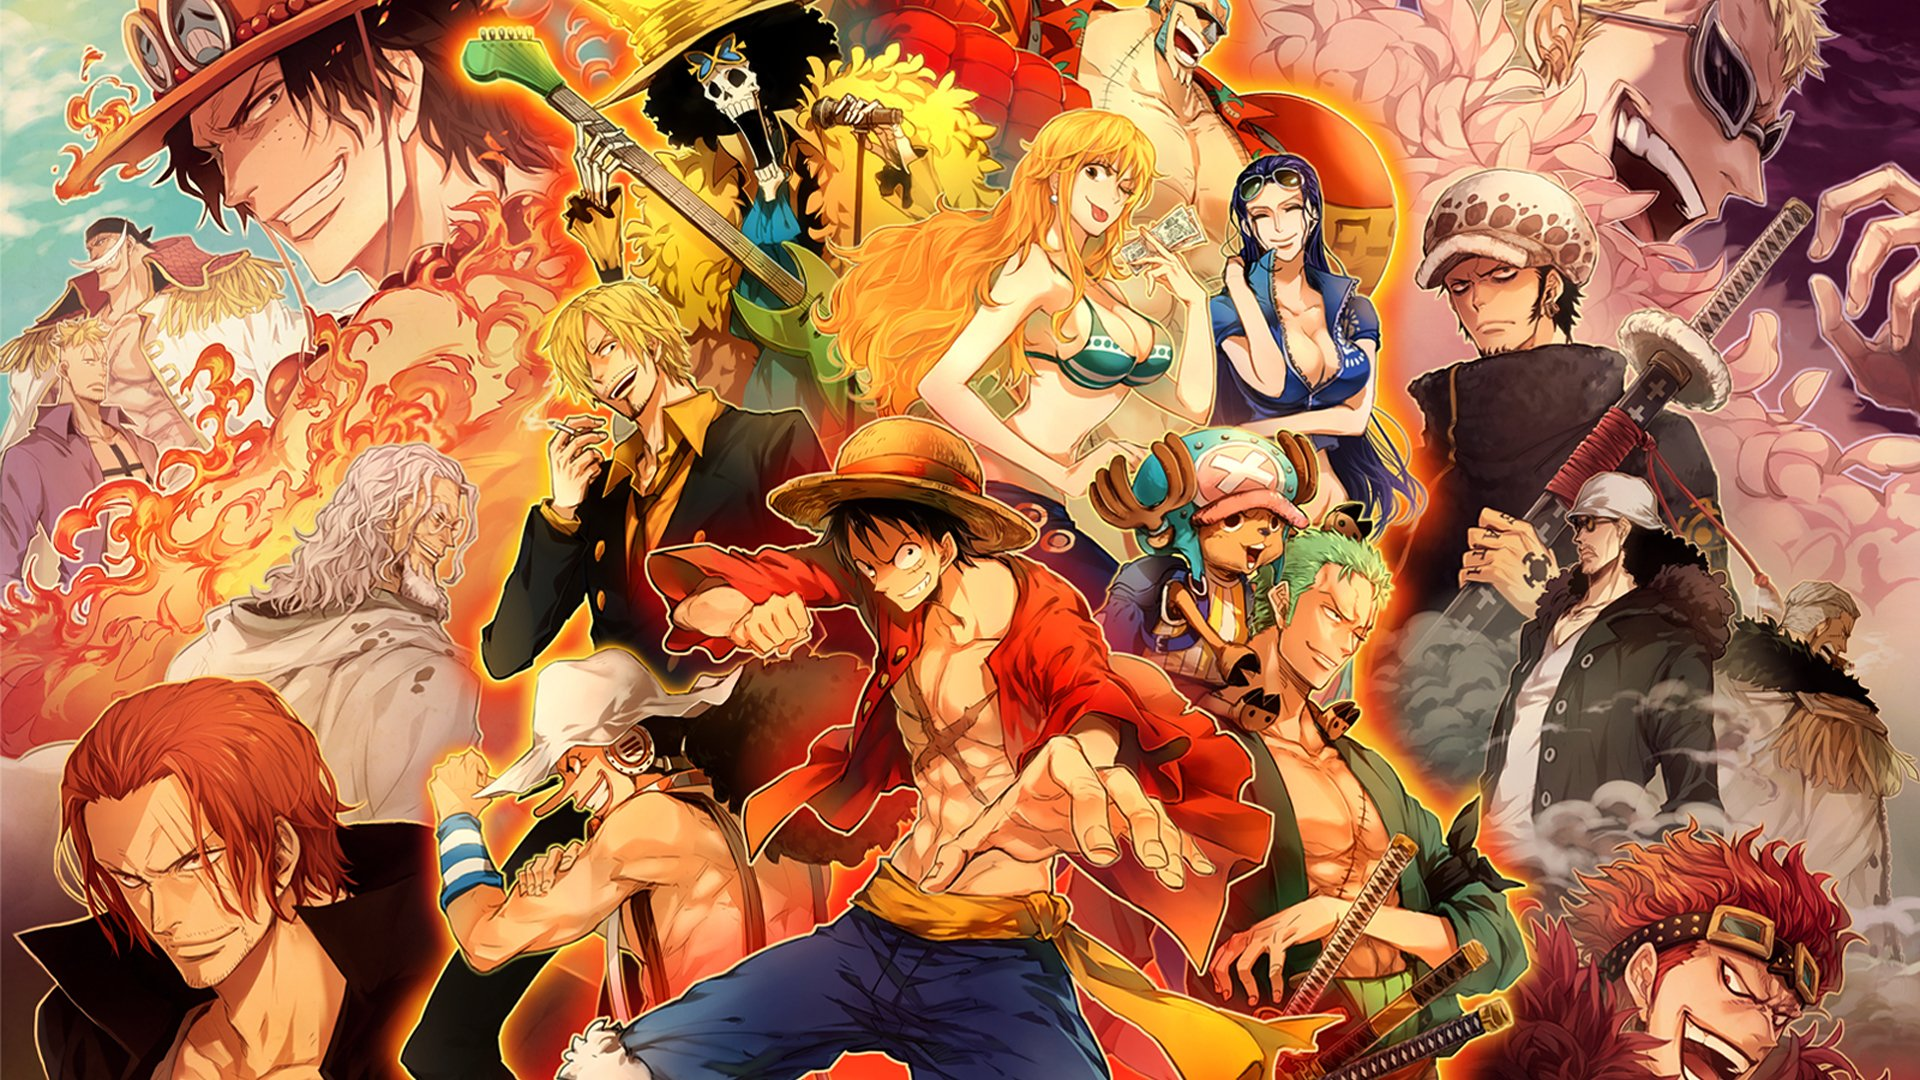 Wallpaper Of One Piece